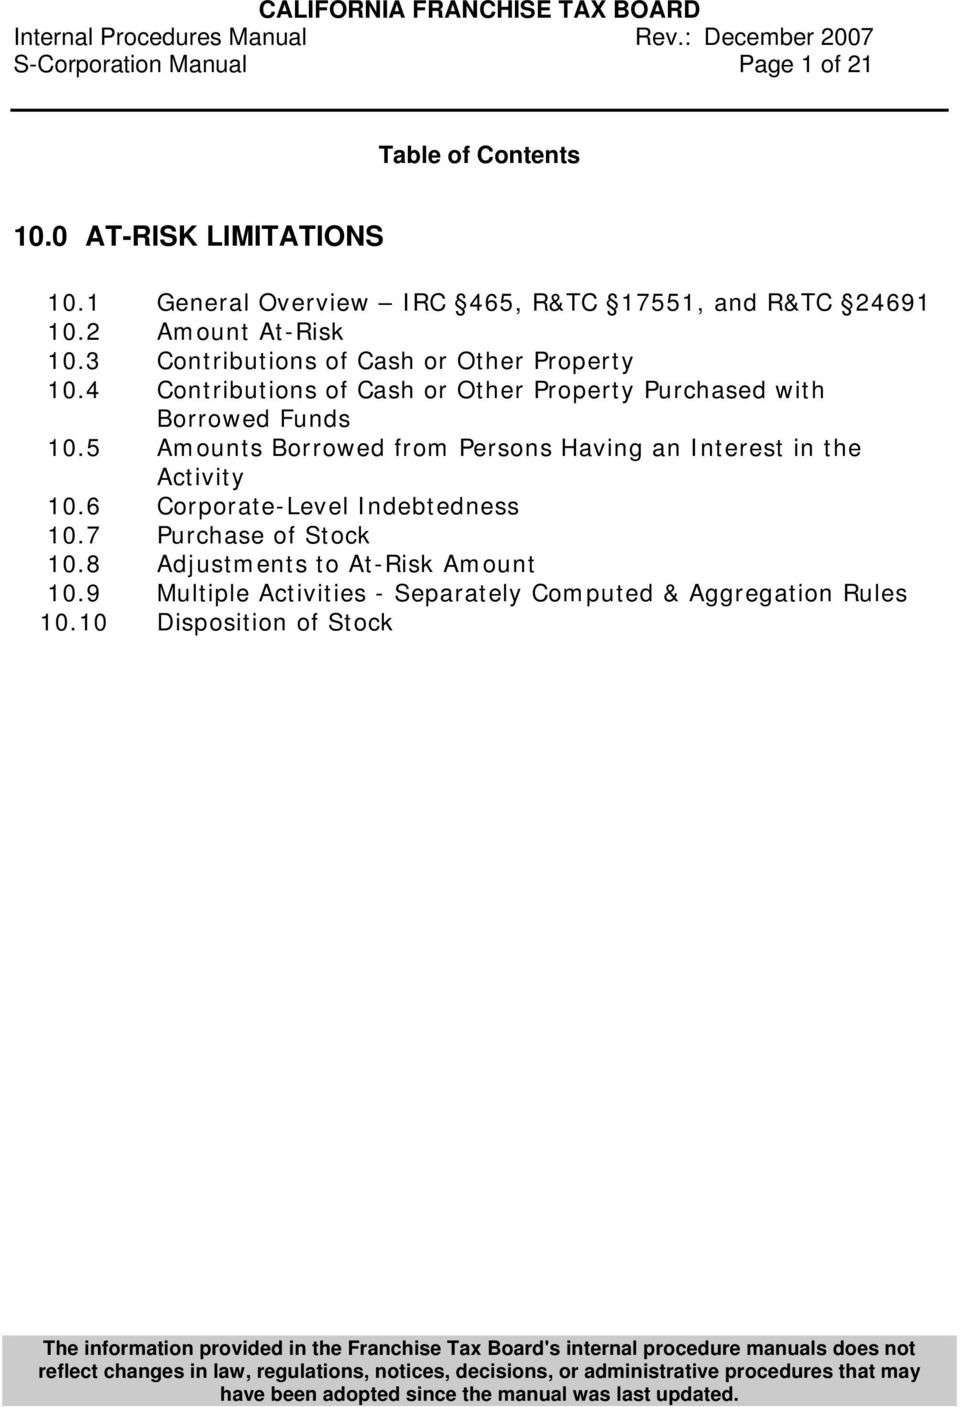 4 Contributions of Cash or Other Property Purchased with Borrowed Funds 10.